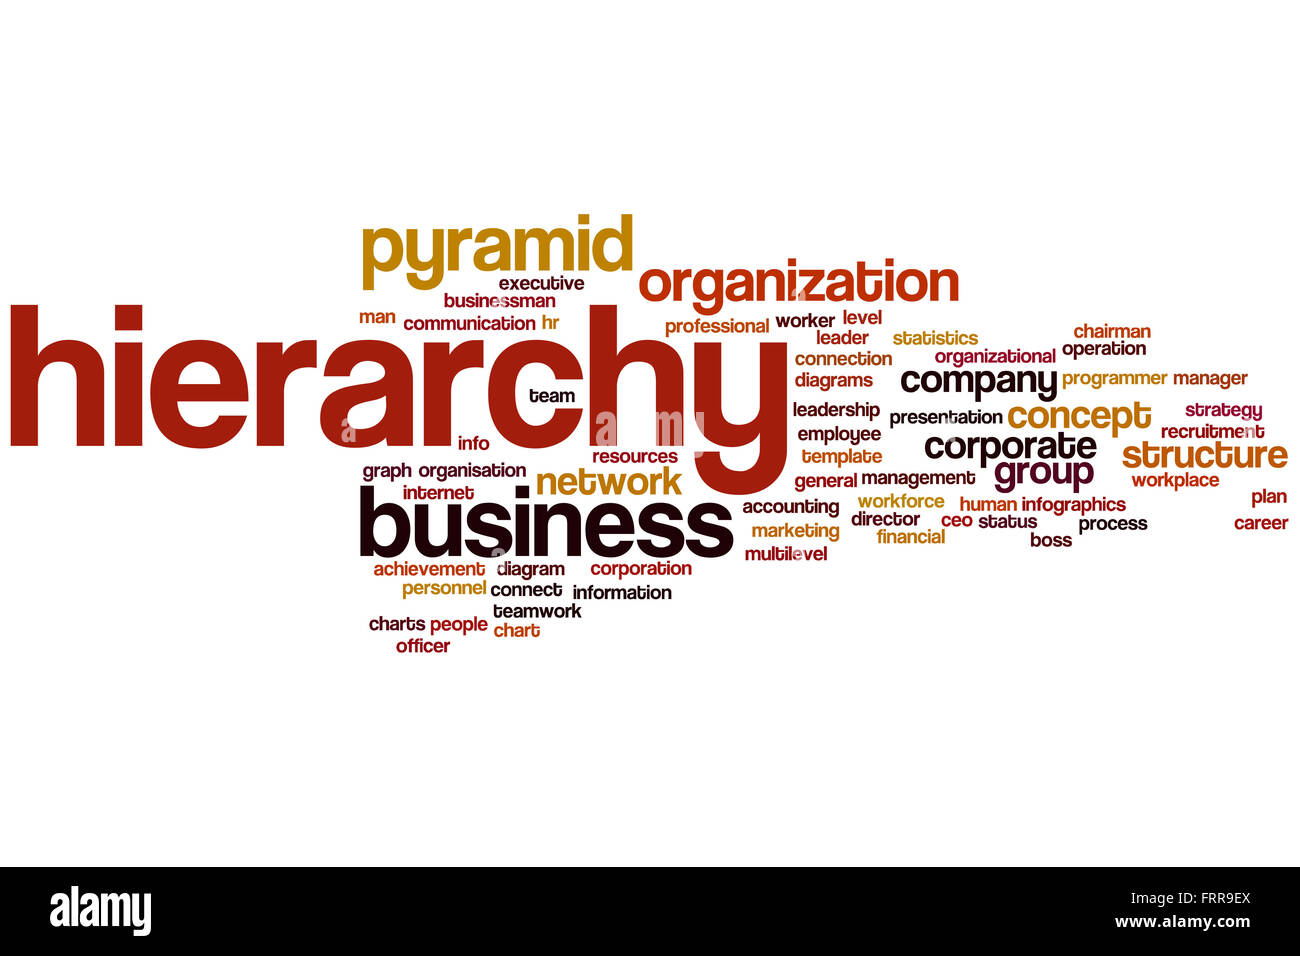 Hierarchy word cloud concept stock photo 100701298 alamy hierarchy word cloud concept ccuart Gallery